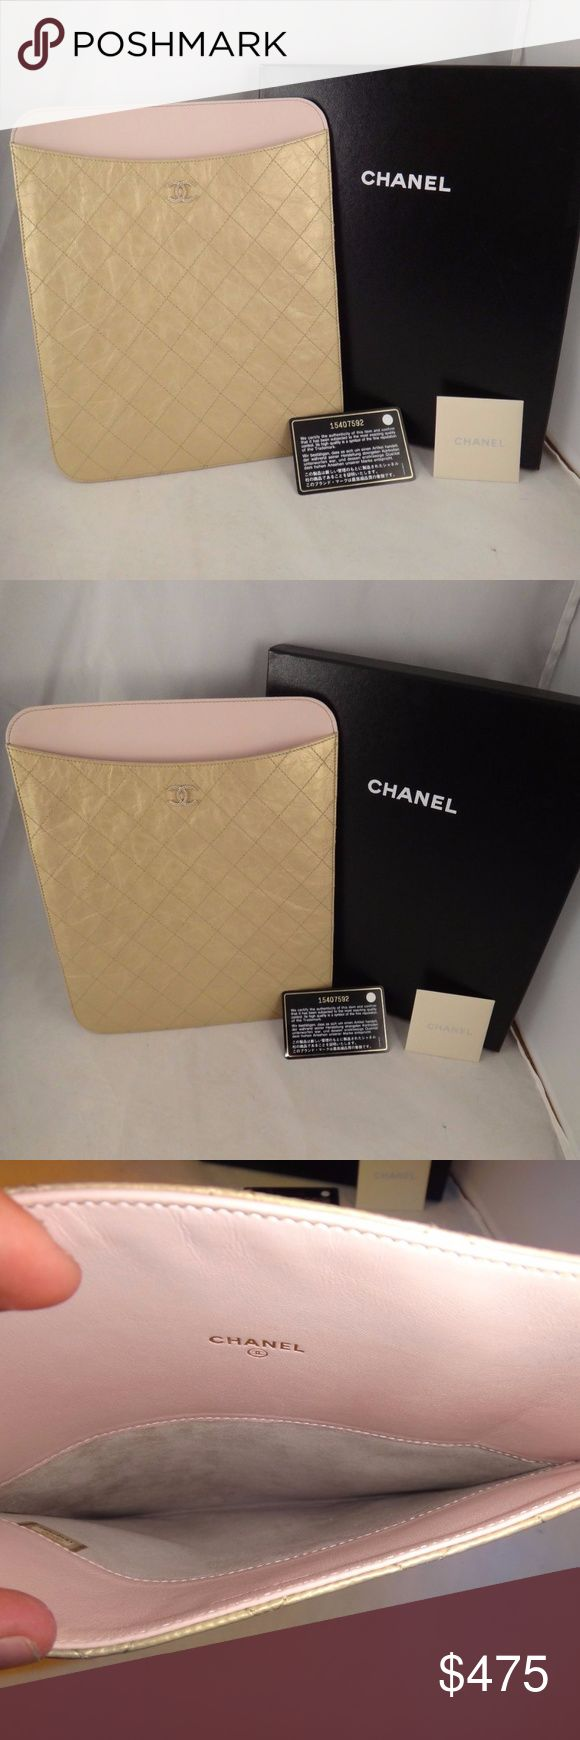 Chanel Light Gold Quilted Leather CC Logo iPadCase NIB Chanel Light Gold Quilted Leather CC Logo iPad Case Cover Sleeve Bag $775  ********** Chanel **********  Brand: Chanel Size: Ipad Case Name: Sleeve Color: Light Gold Material: Leather Retail: $775+tax Light gold leather Quilted design throughout Light pink leather inside CC light gold front logo 100% Authentic or your money back Comes in the box with authenticity card So cute and a super must have Great gift CHANEL Accessories Laptop…